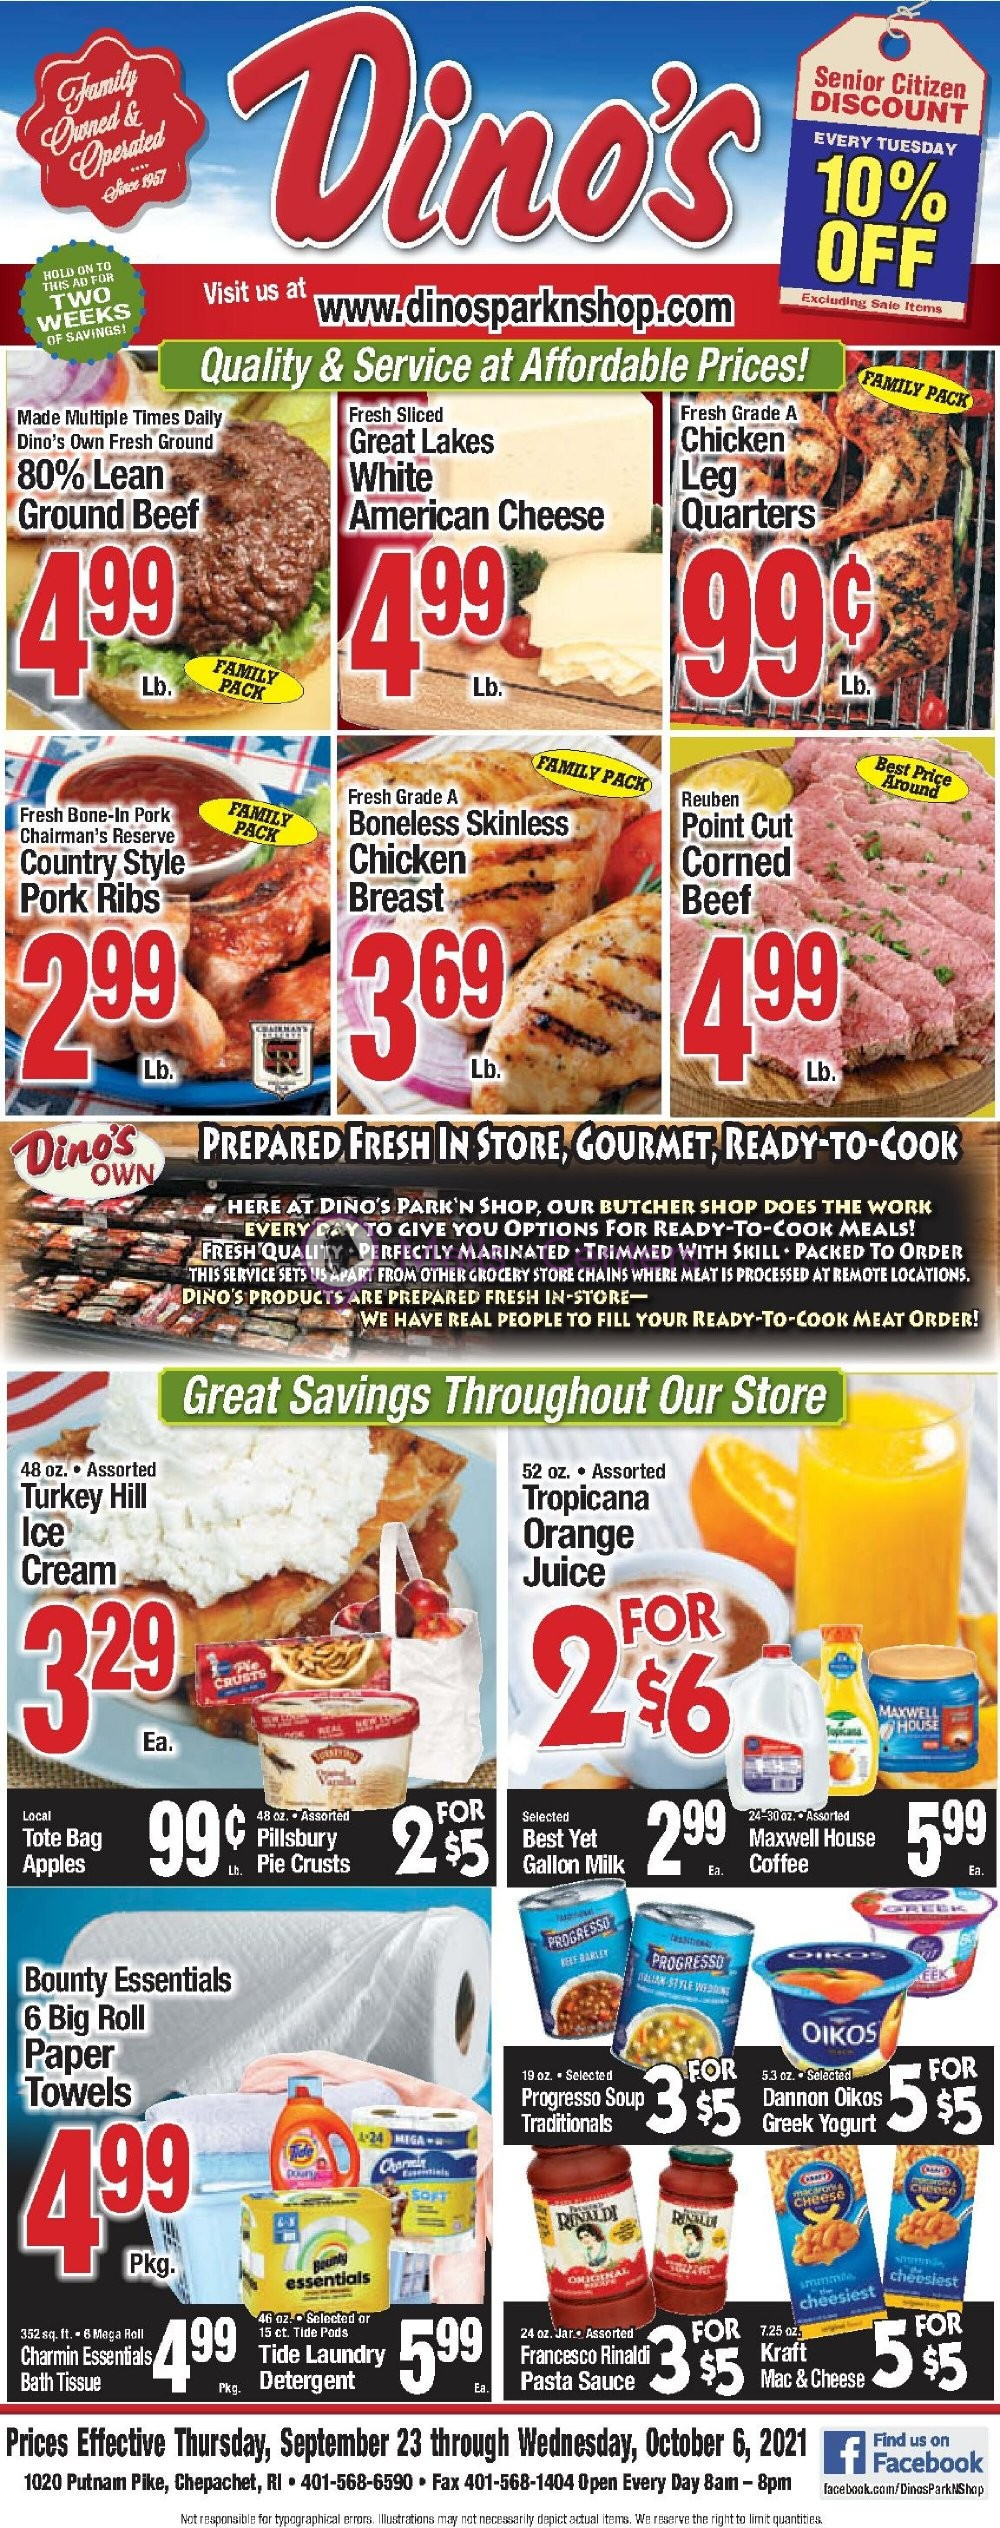 weekly ads Dino's Park & Shop - page 1 - mallscenters.com